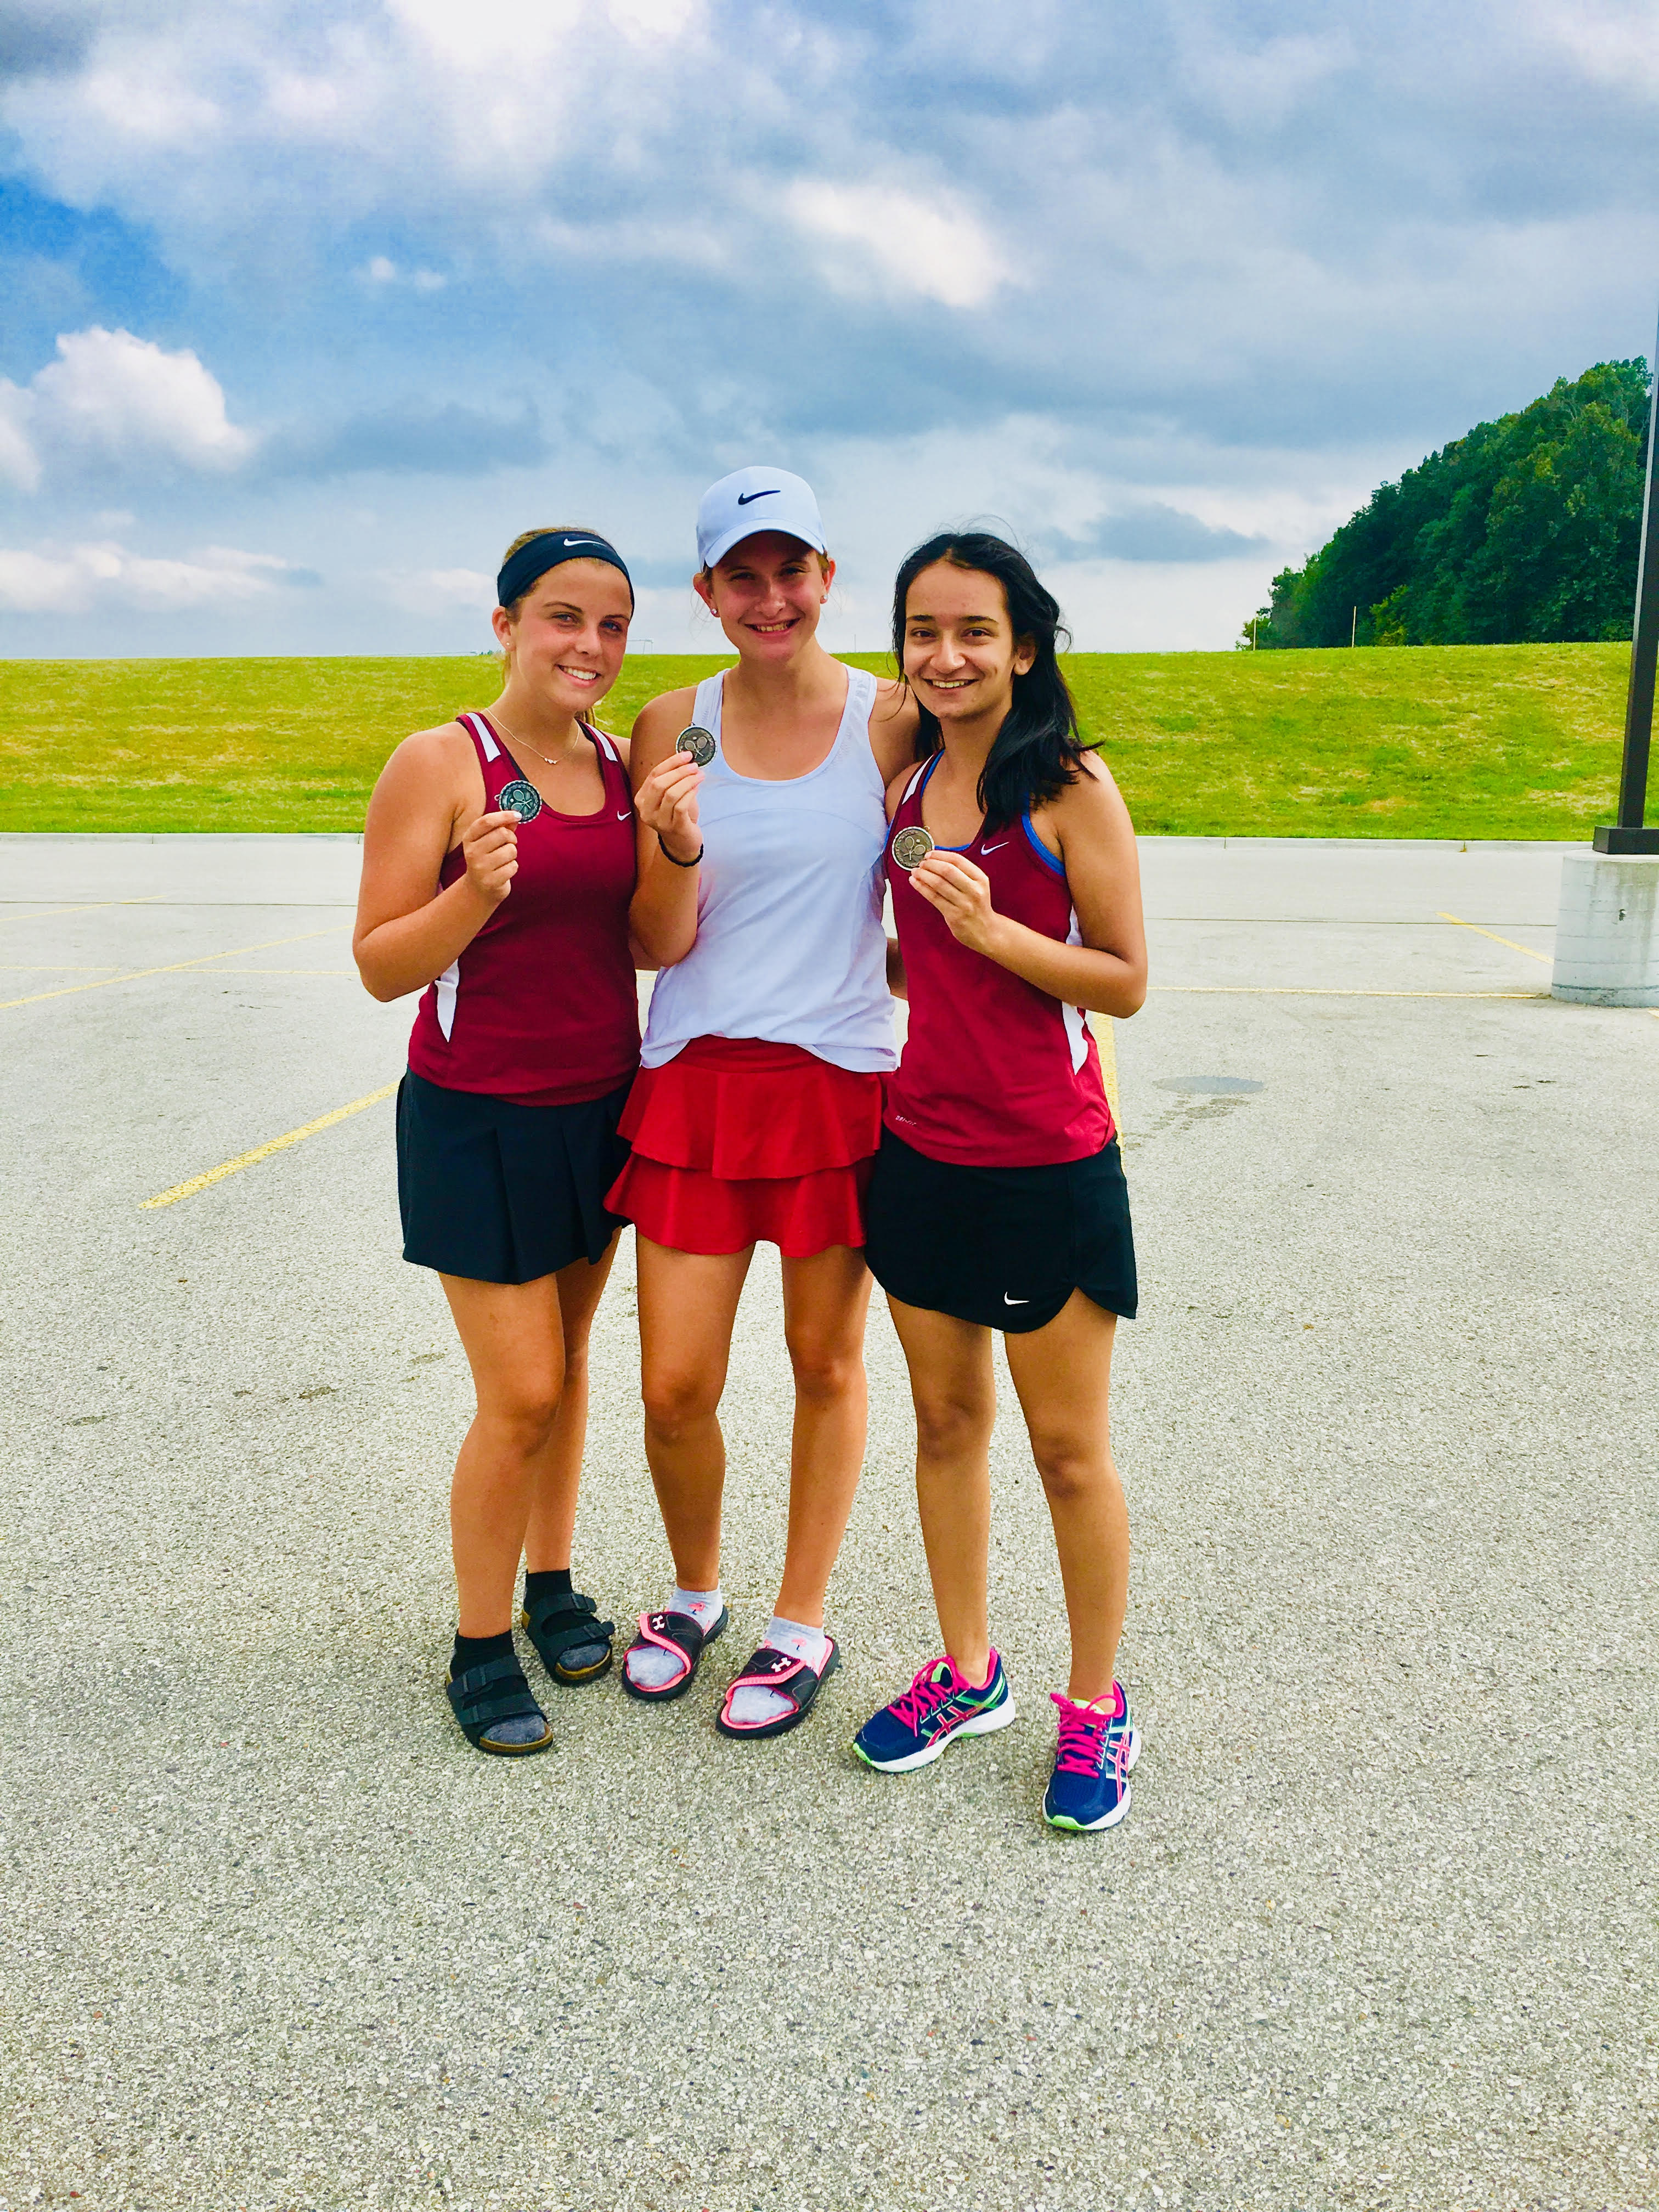 4 EAST TENNIS ATHLETES TAKE HOME MEDALS